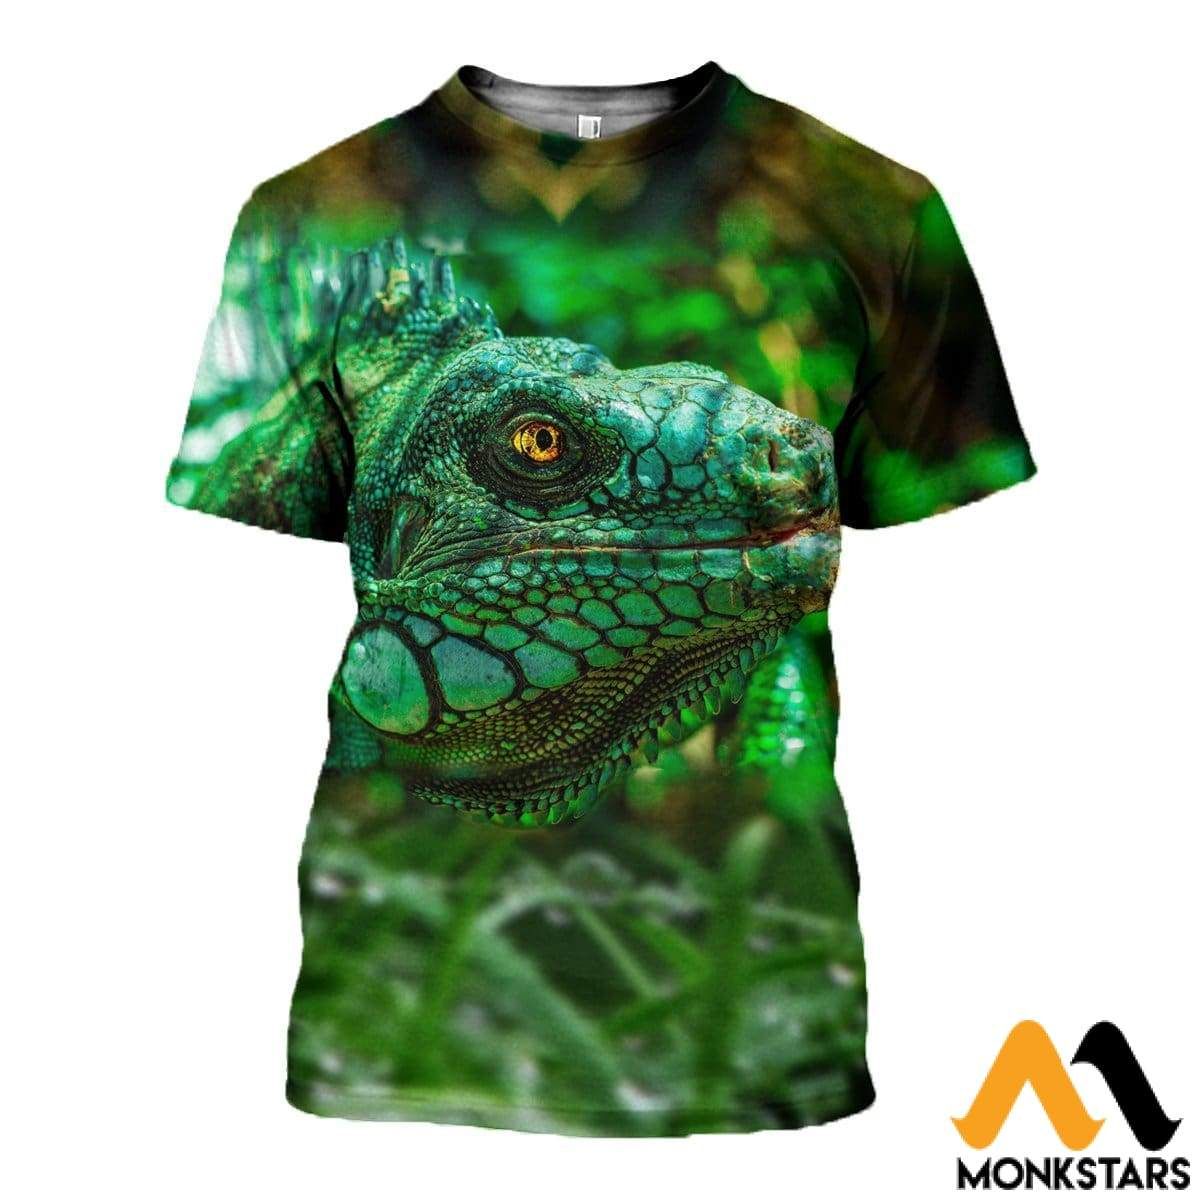 3D All Over Printed Lizard Shirts And Shorts T-Shirt / Xs Clothes